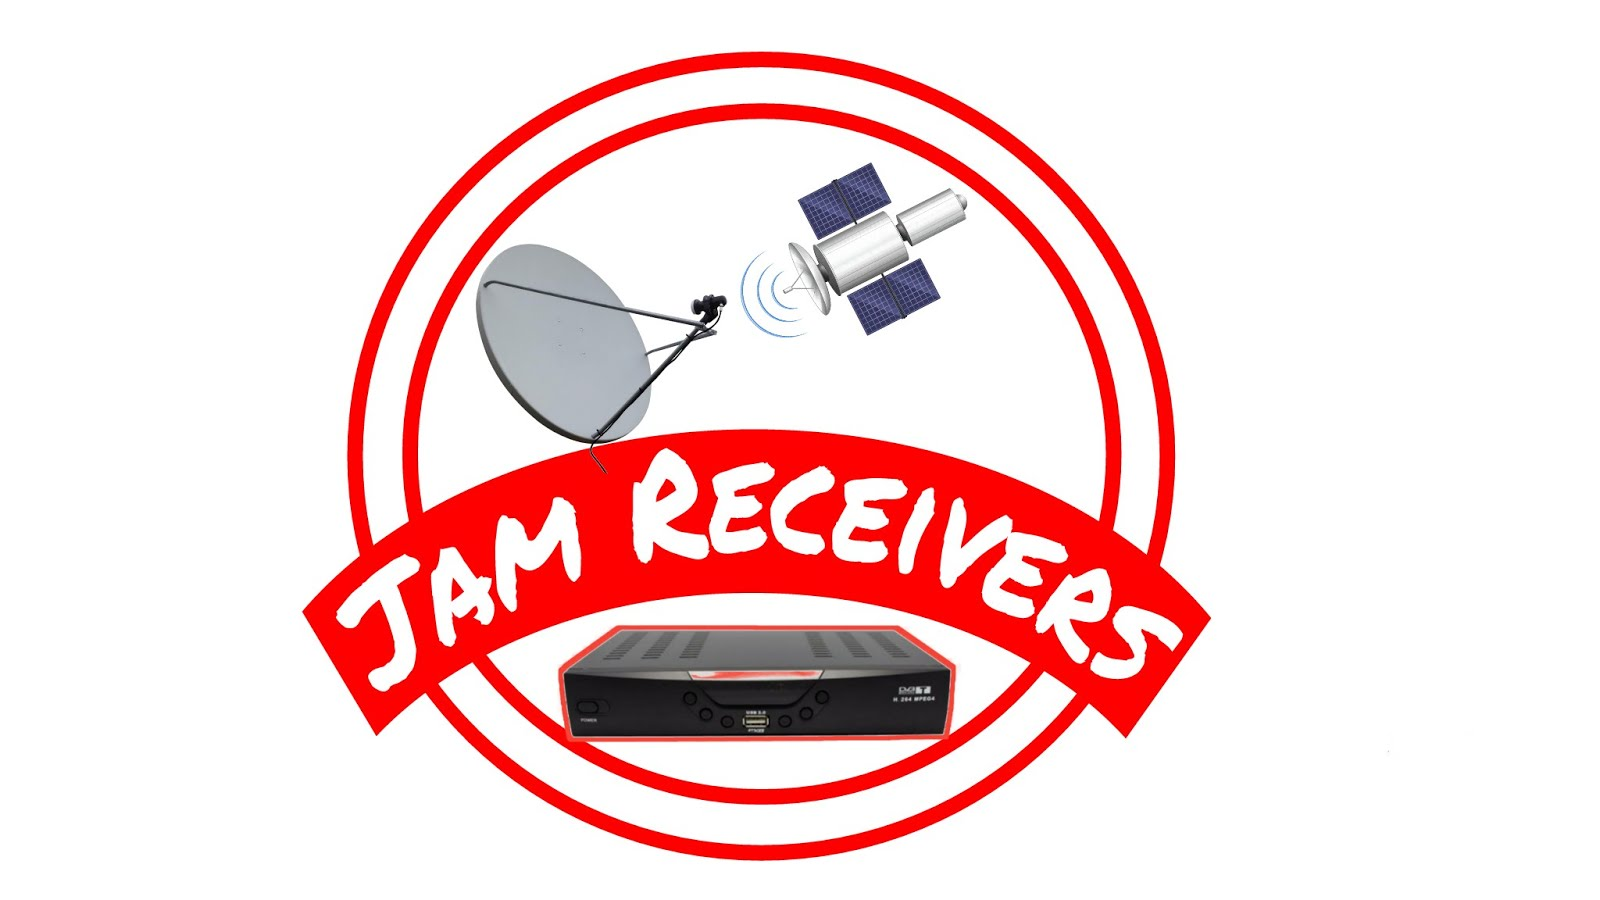 Gx6605s Receivers New PowerVu Software 2019 - Jam Receivers